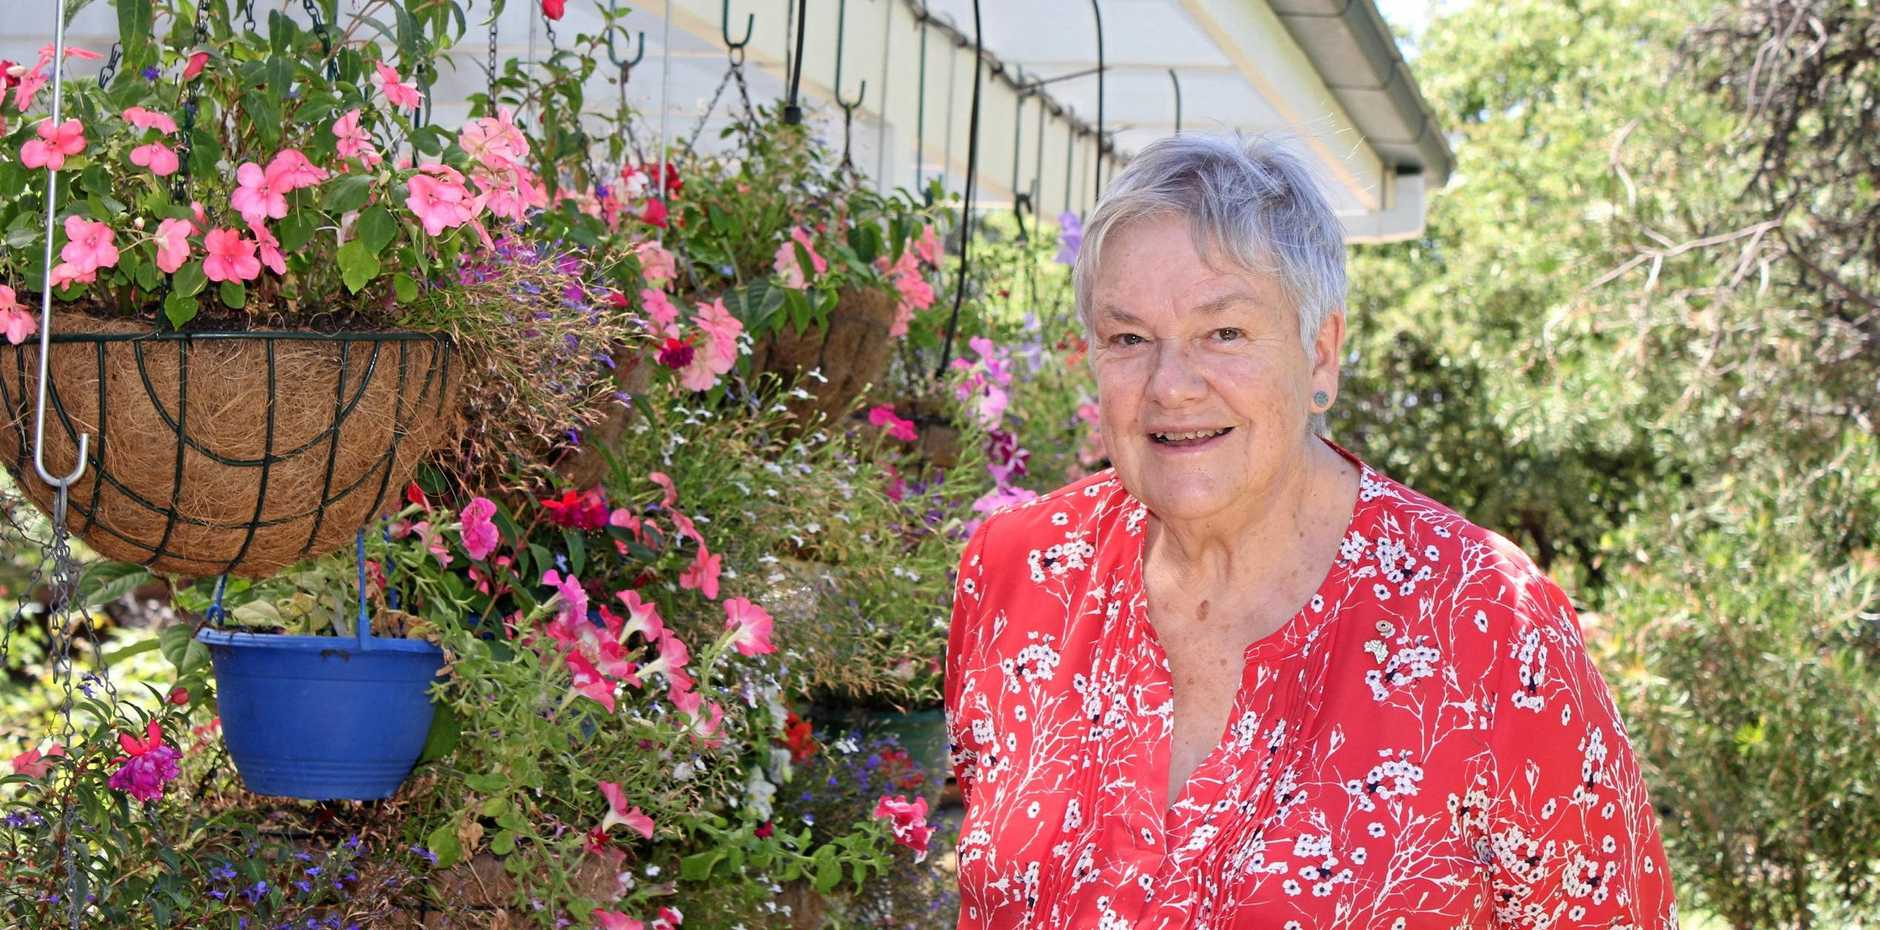 Senior Australian of the Year 2019, Dr Suzanne Packer AM in her garden in Canberra.